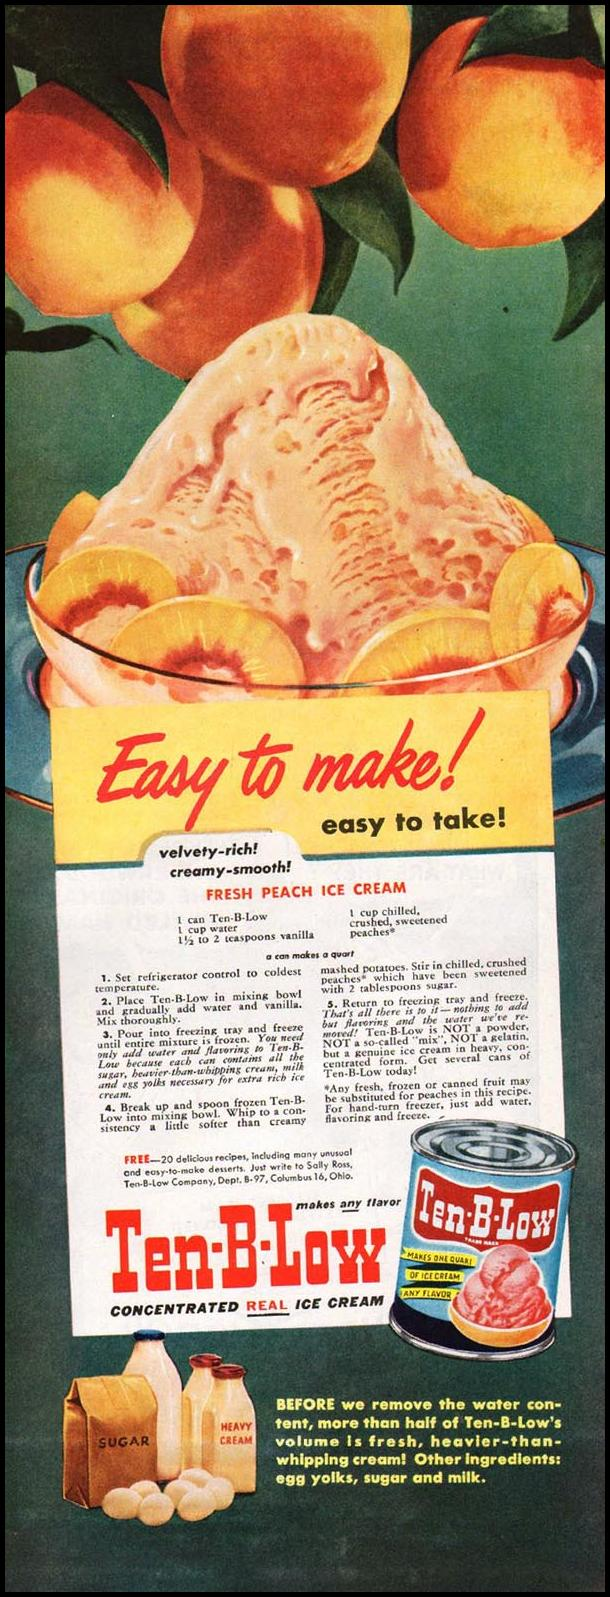 TEN-B-LOW ICE CREAM CONCENTRATE LADIES' HOME JOURNAL 07/01/1949 p. 96